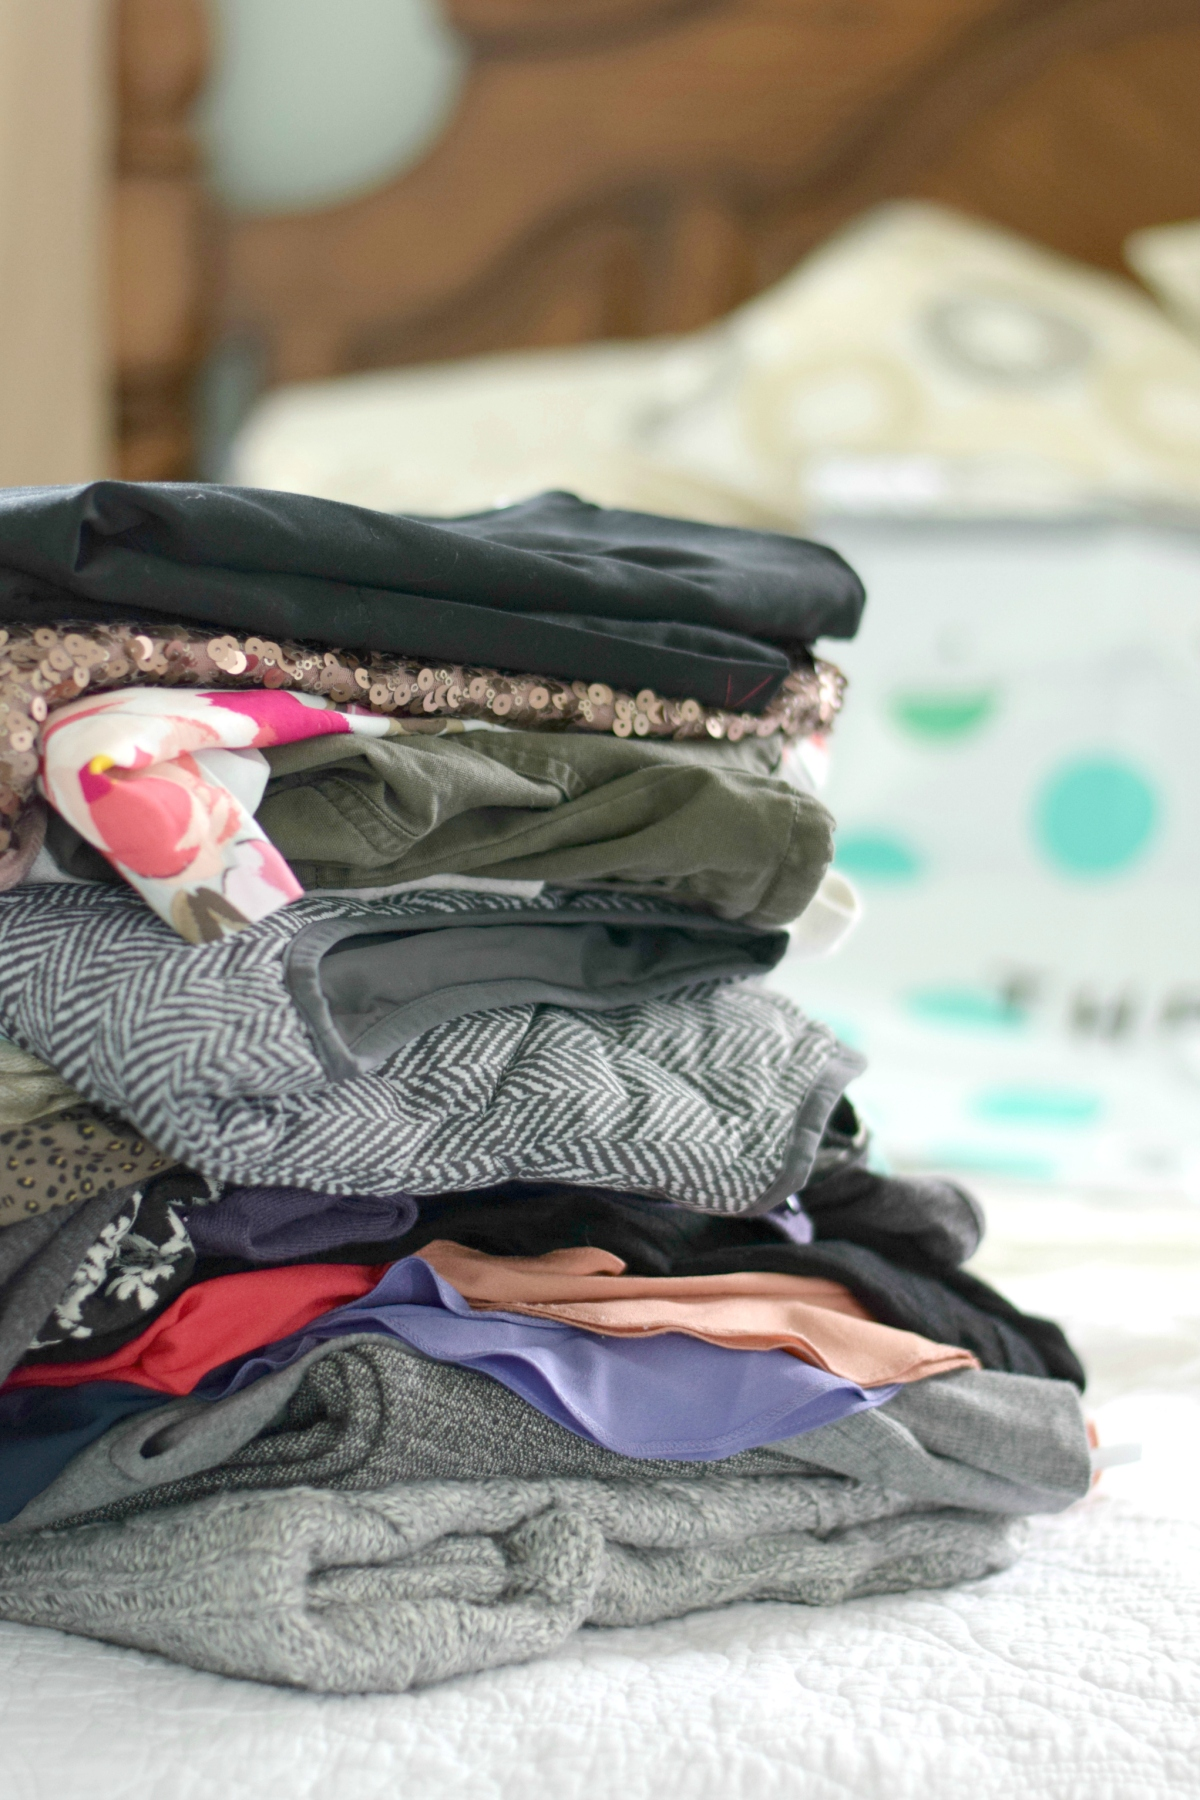 Selling Clothes to ThredUP: A Review |www.pearlsandsportsbras.com|